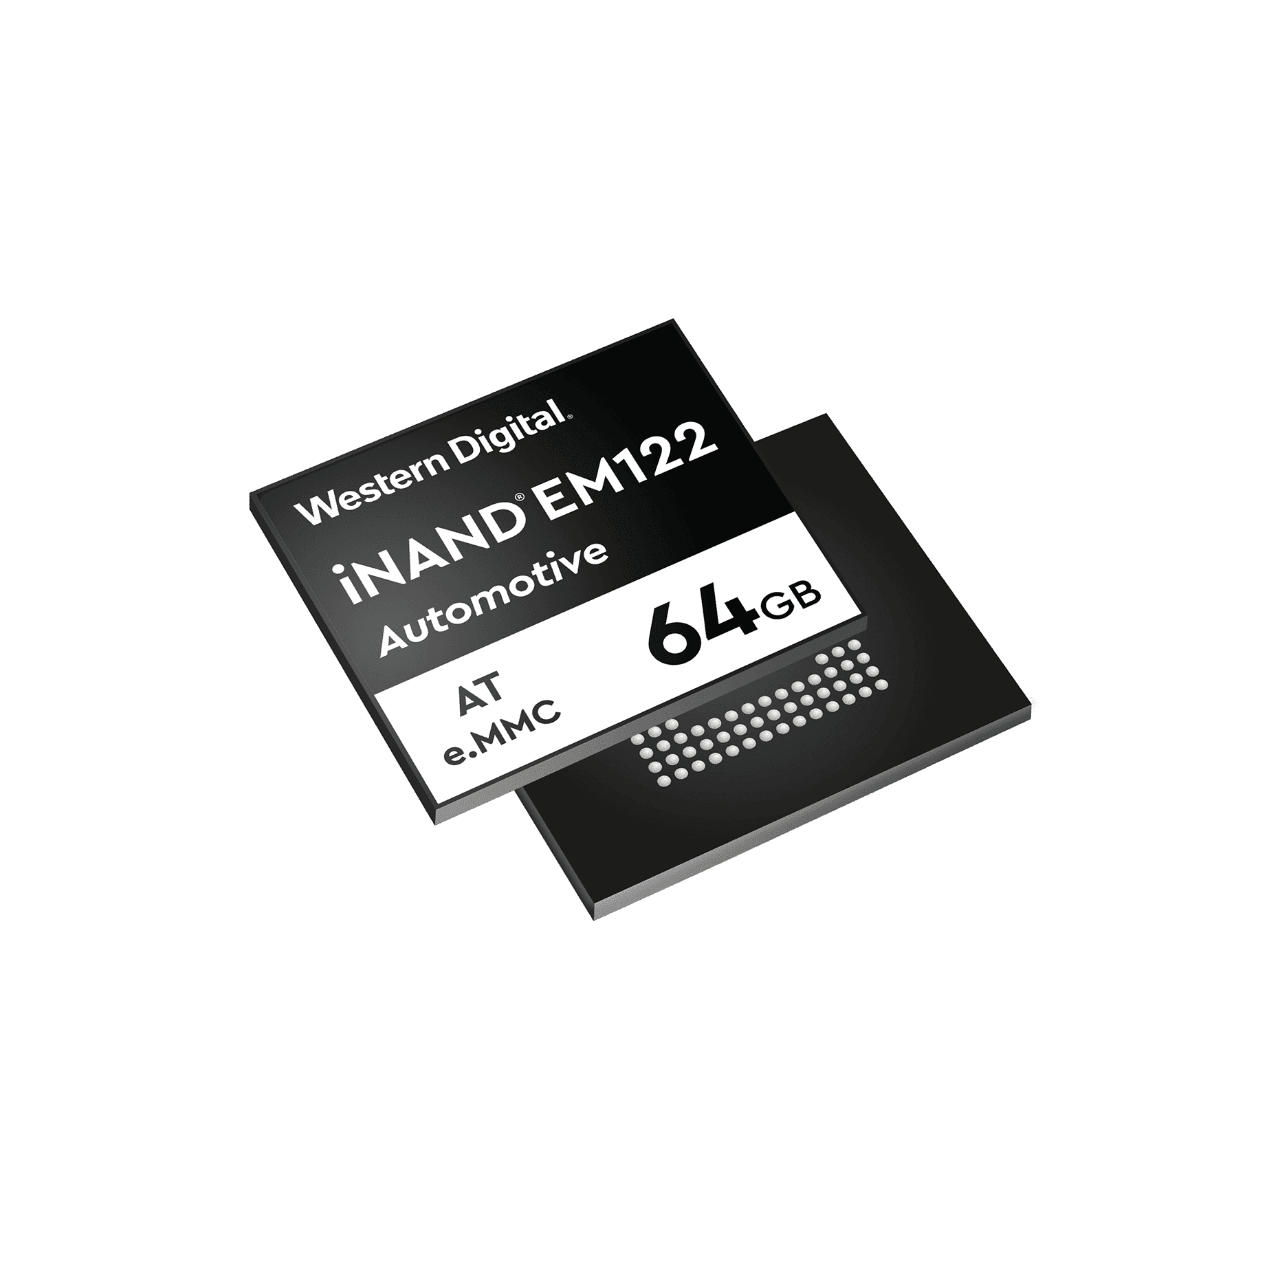 product-hero-image-automotive-iNAND_EM122_ATeMMC_64GB